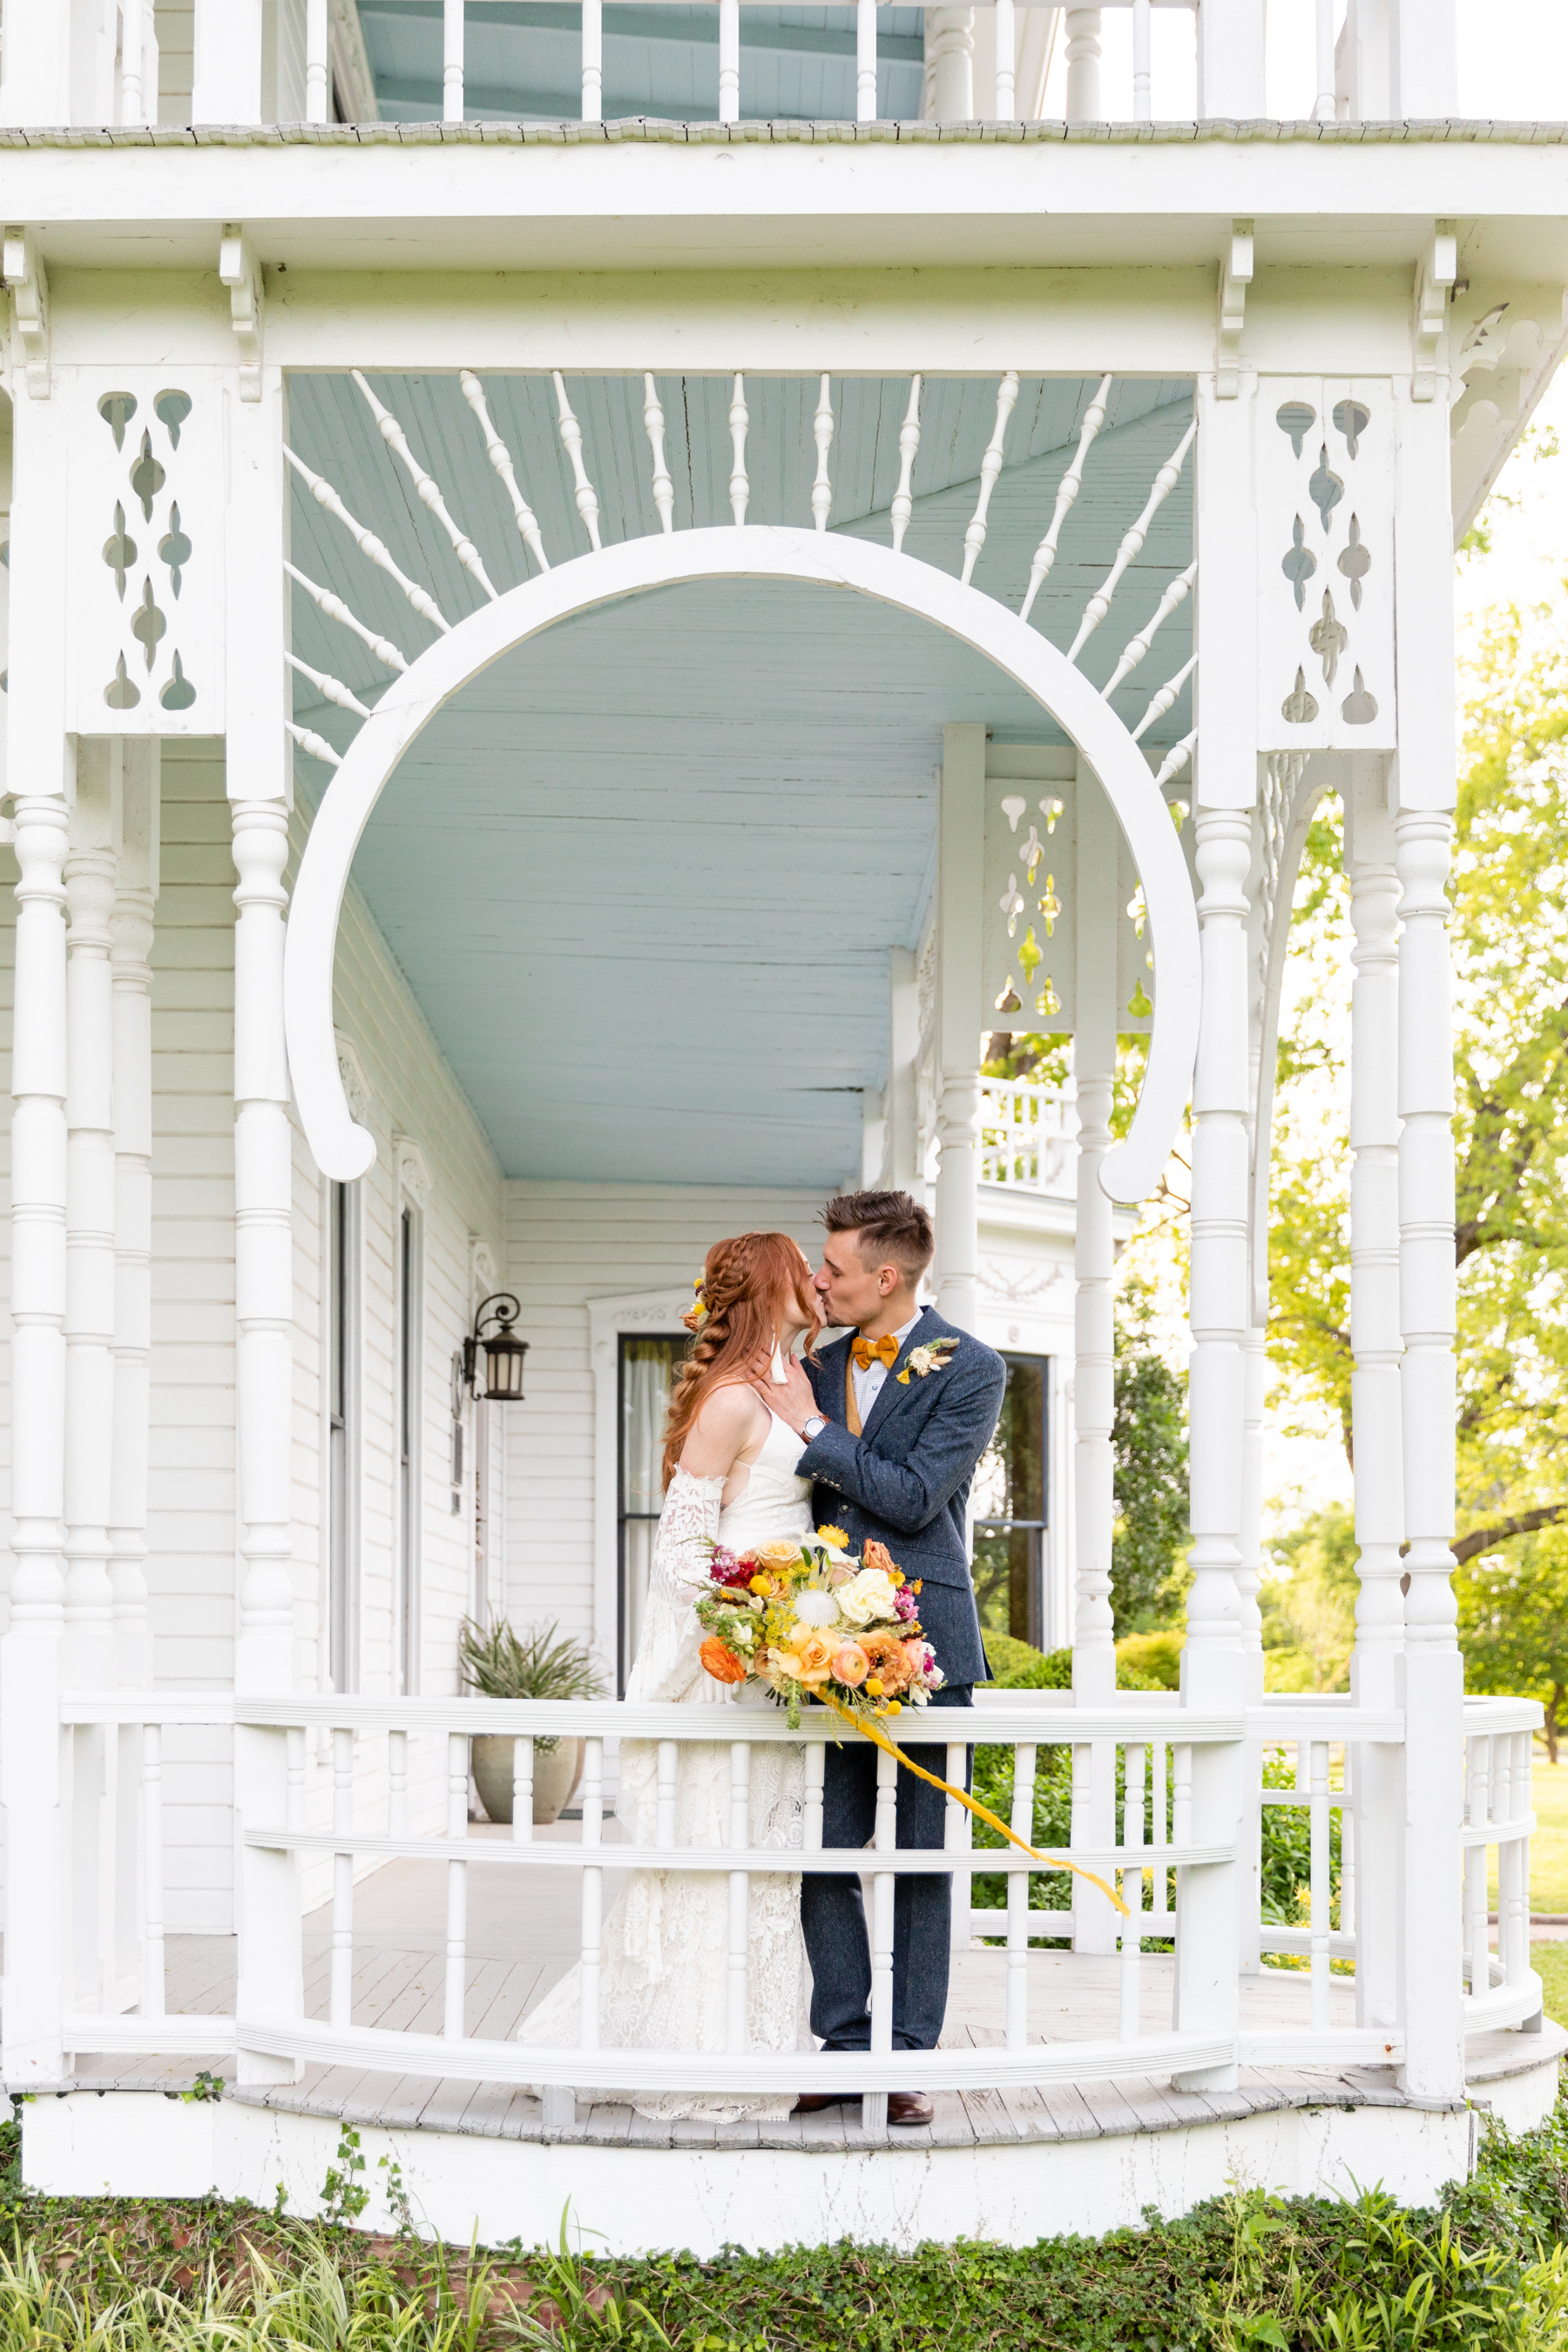 Spring wedding at Barr Mansion in Austin, TX by Koby Brown Photography